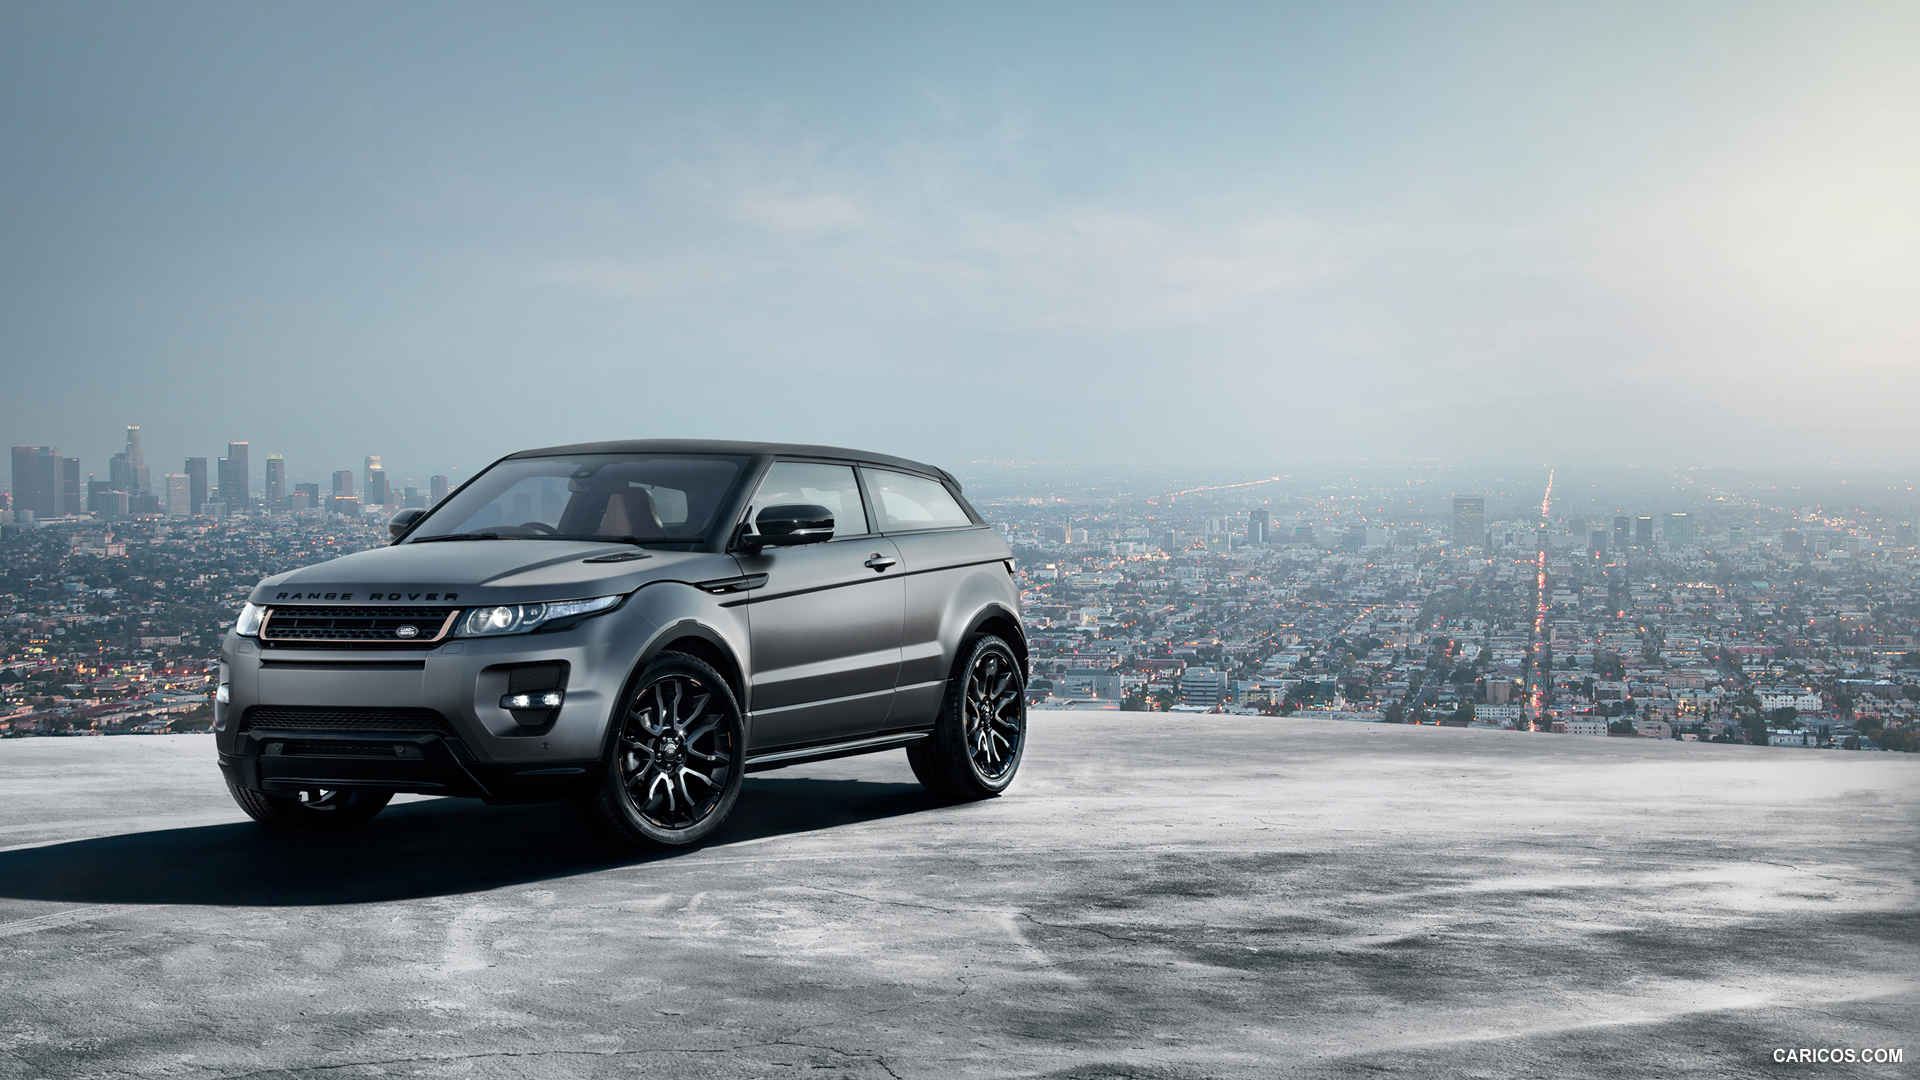 Cool Range Rover Evoque HD Dekstop Wallpapers 02 Pictures izr